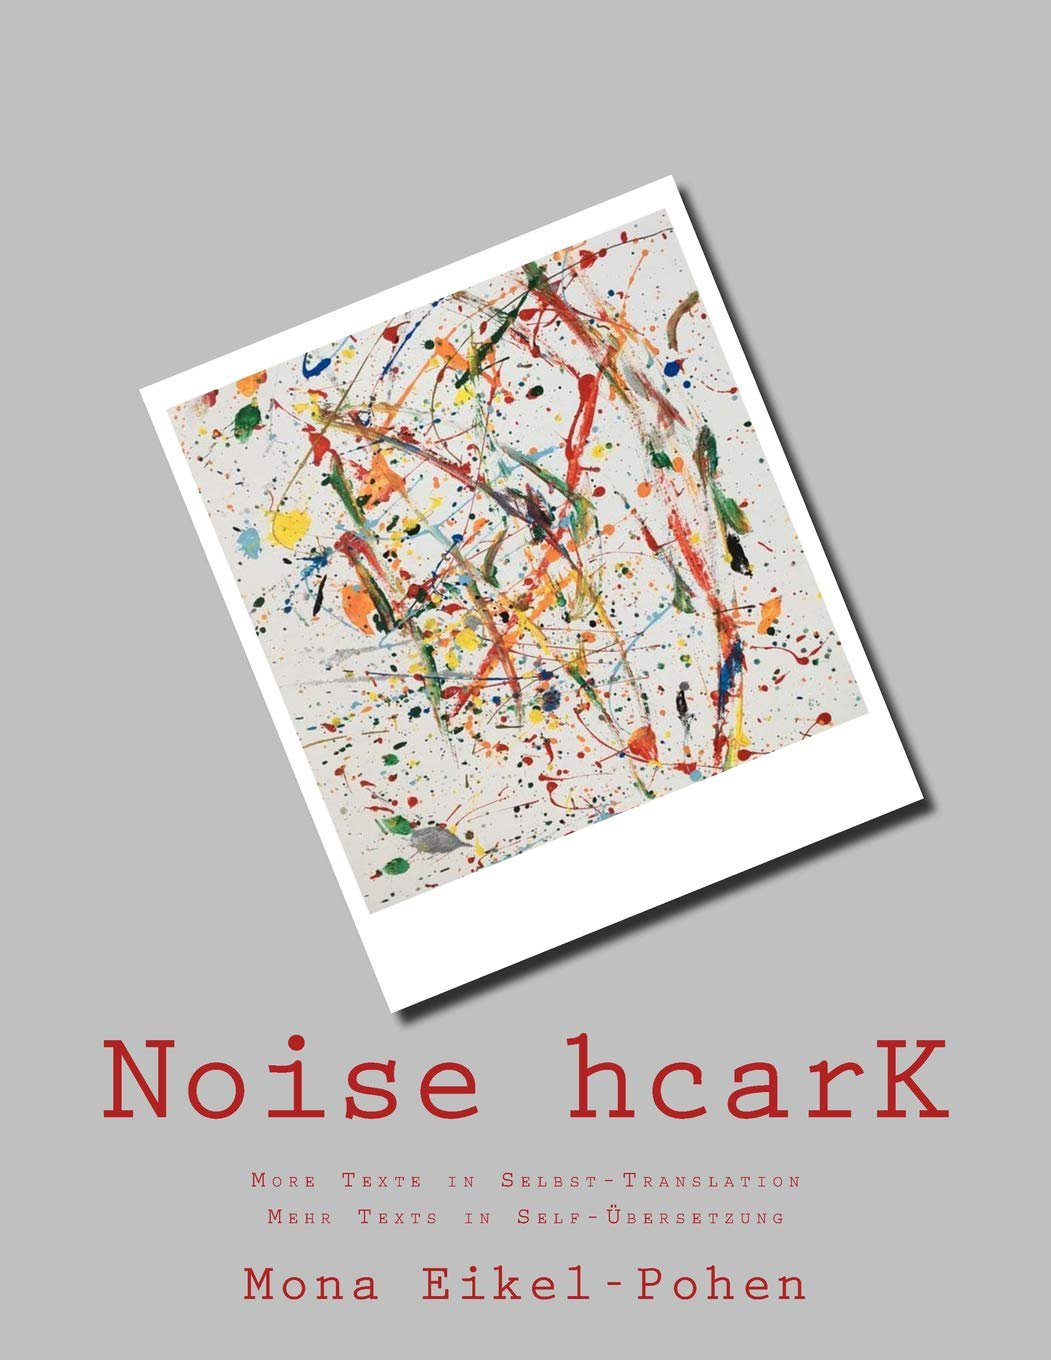 Noise hcarK: More Texte in Selbst-Translation. Mehr Texts in Self-Übersetzung